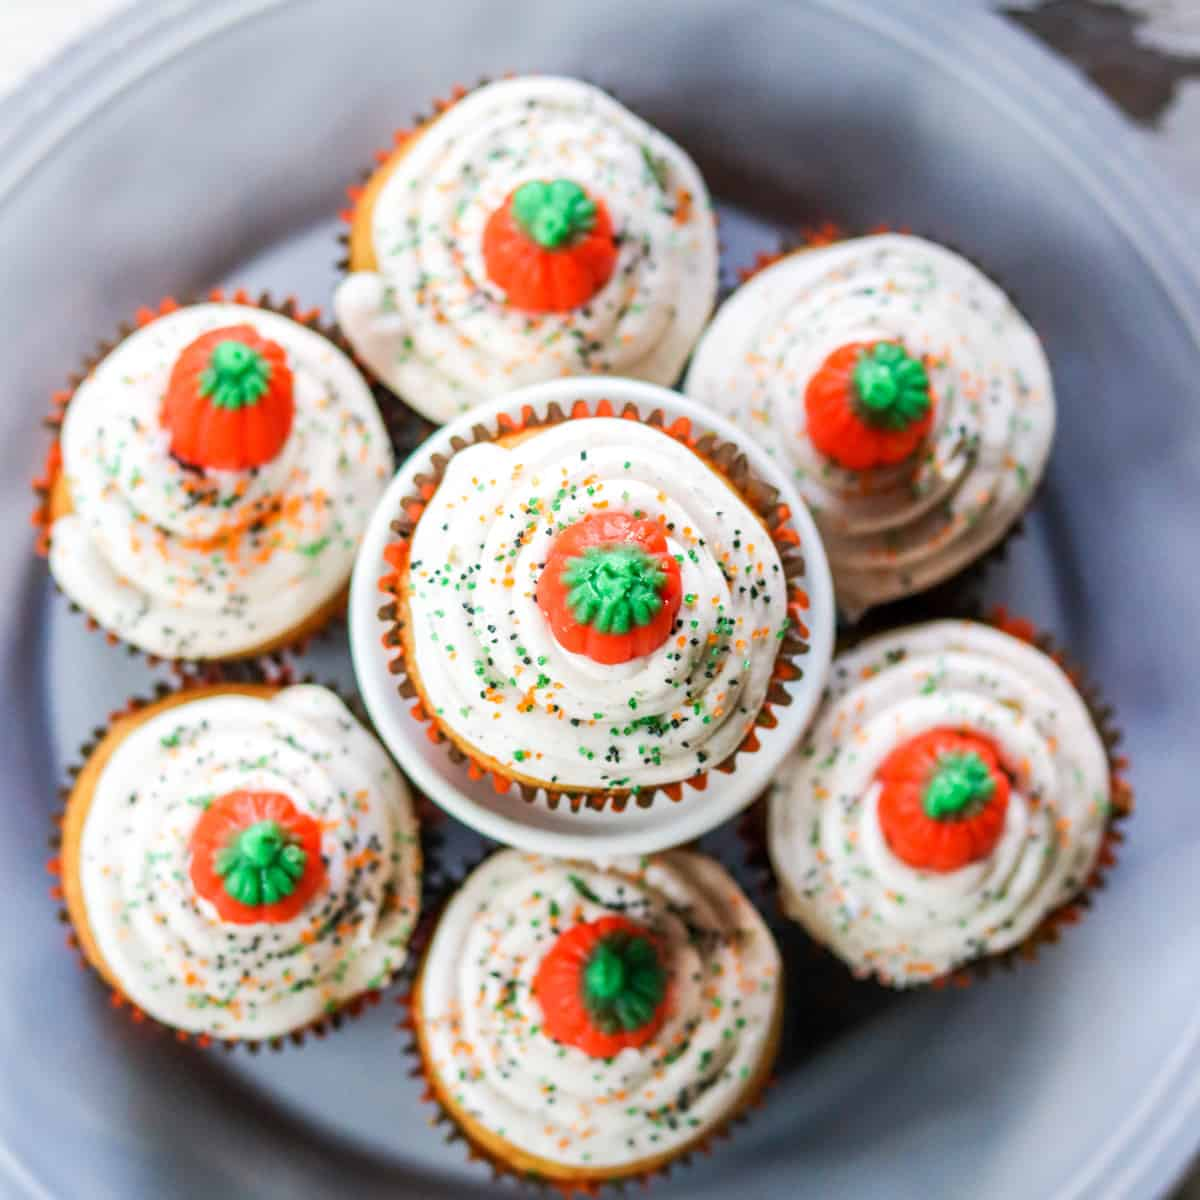 Pumpkin Spice Cupcakes with Cinnamon Cream Cheese Frosting